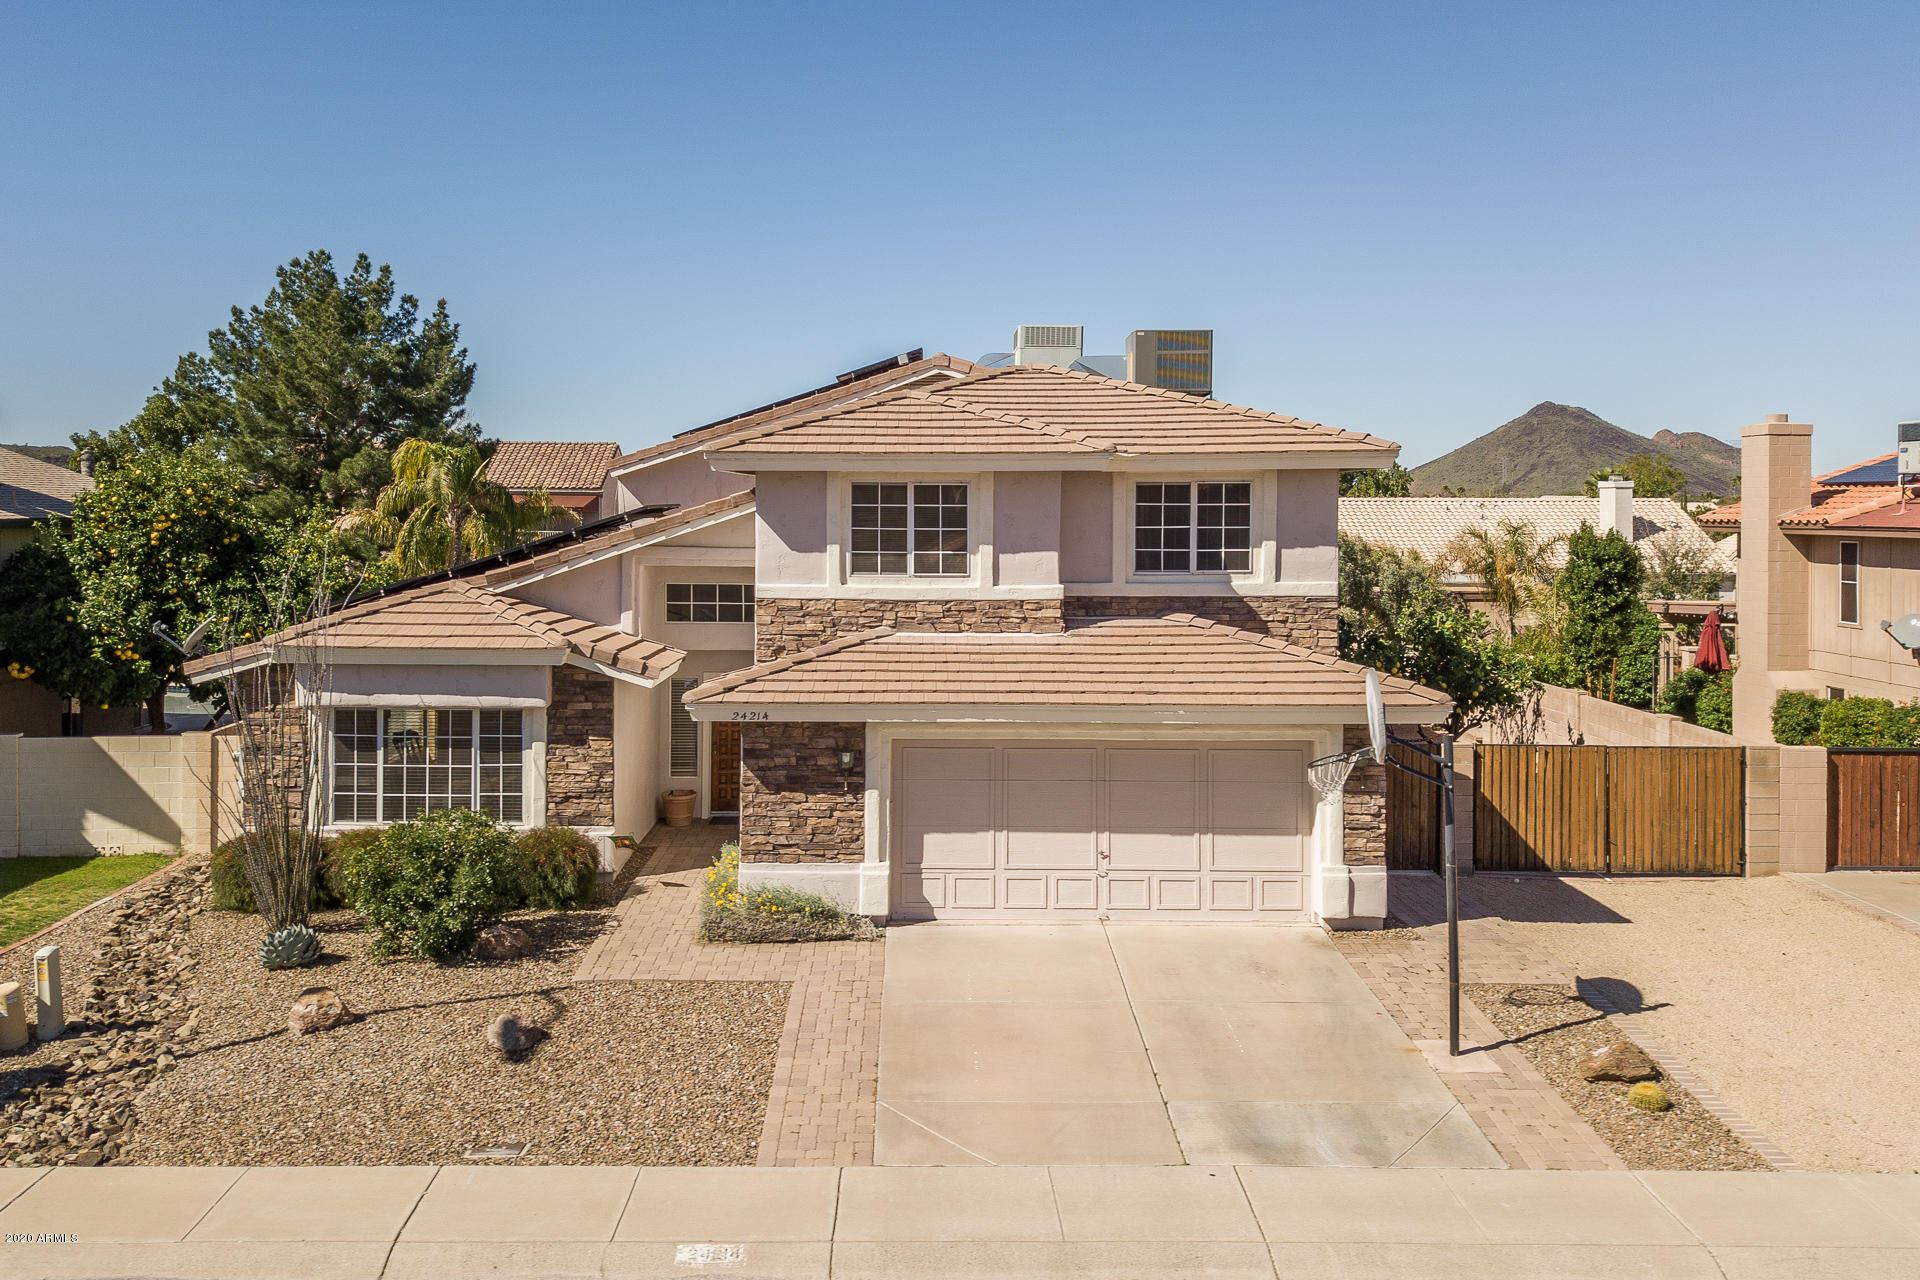 24214 N 40TH Lane, Glendale, AZ 85310 - #: 6043084